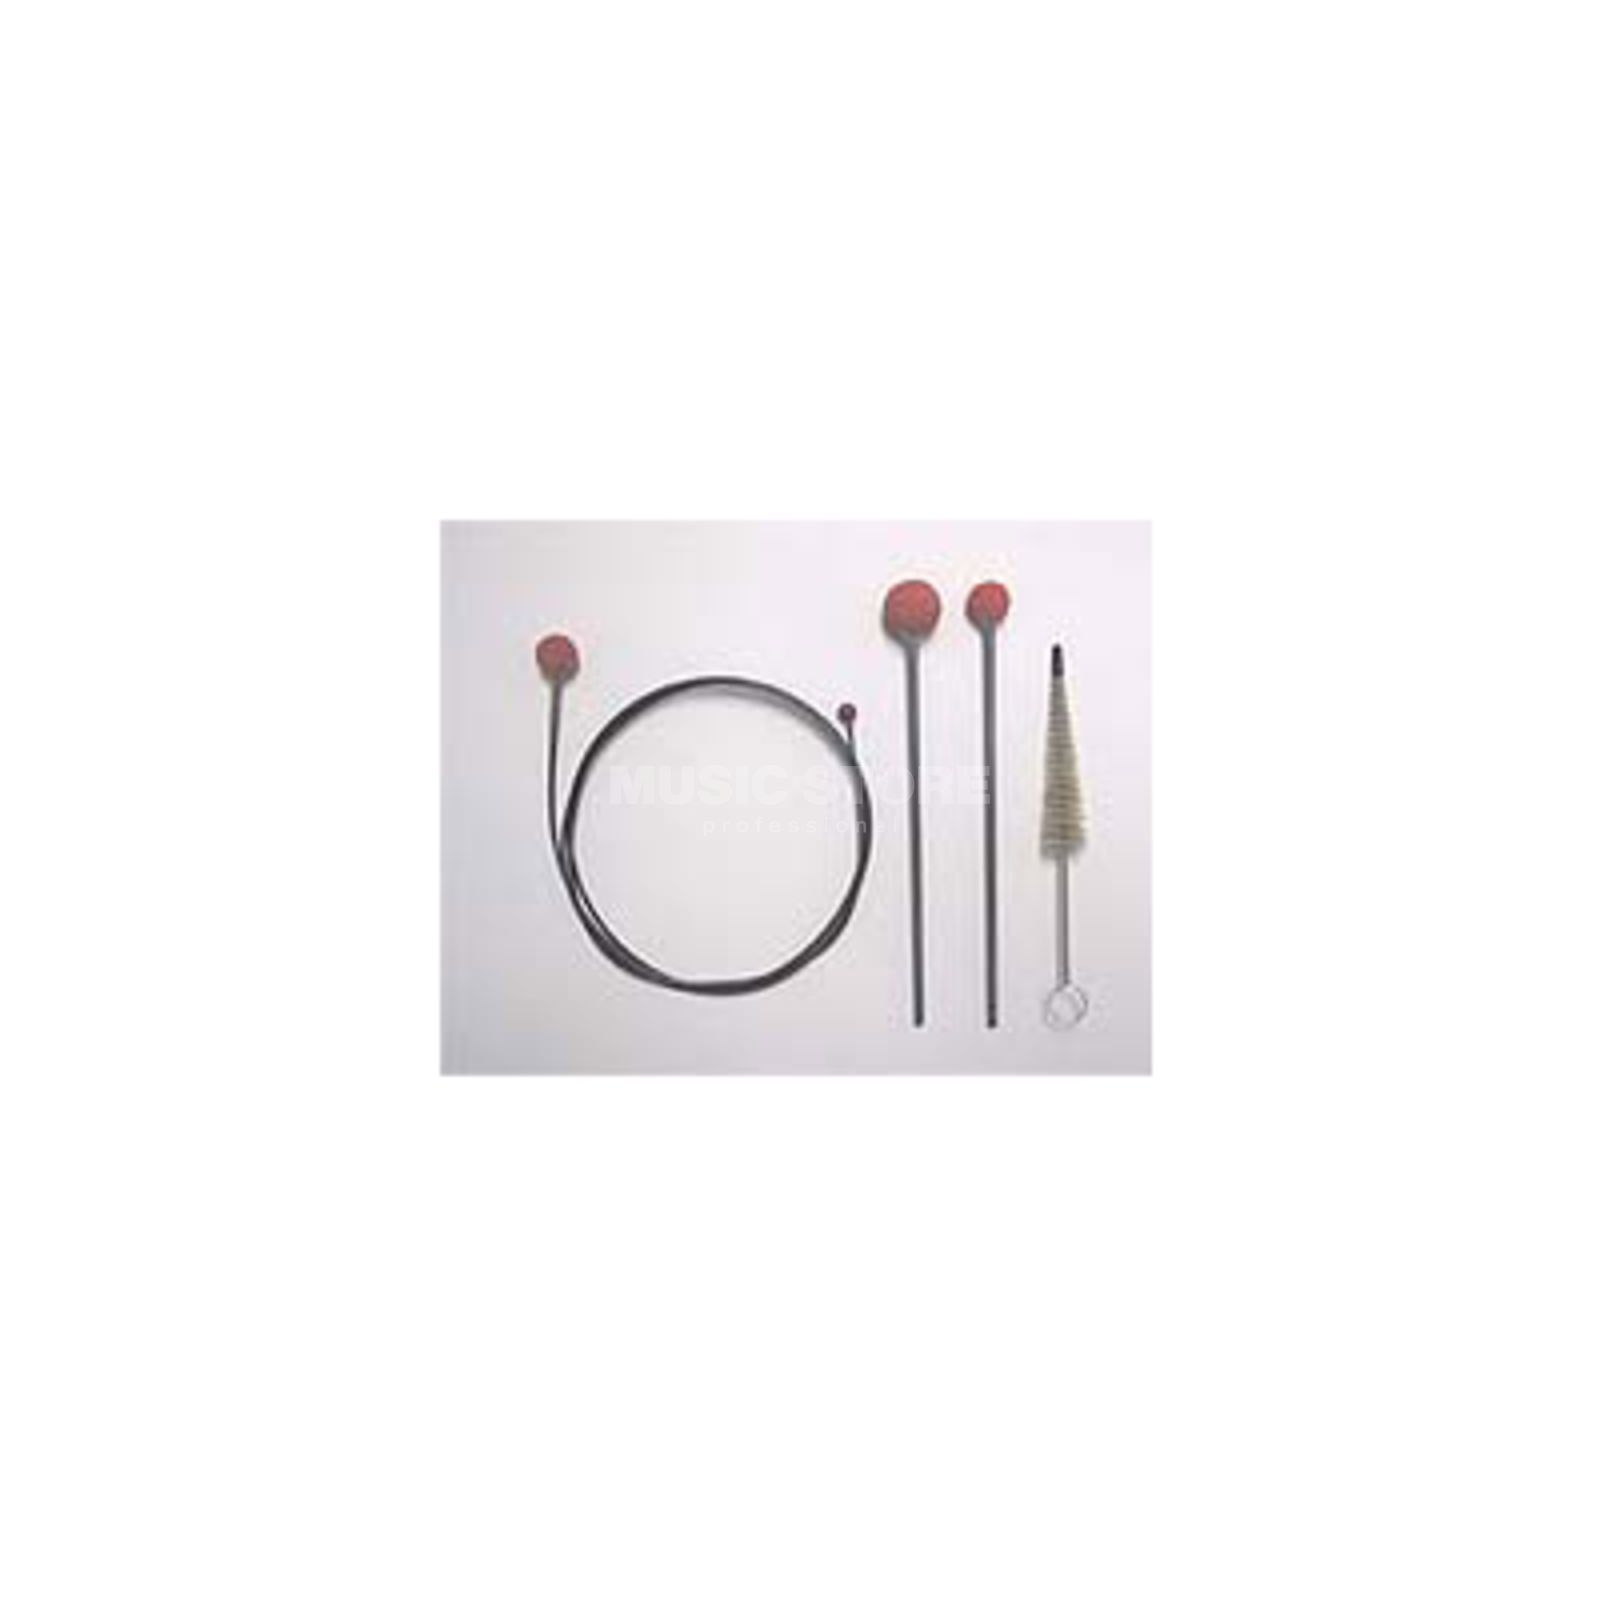 REKA Cleaning Set for Tuba/Sausophone/Helicon Zdjęcie produktu